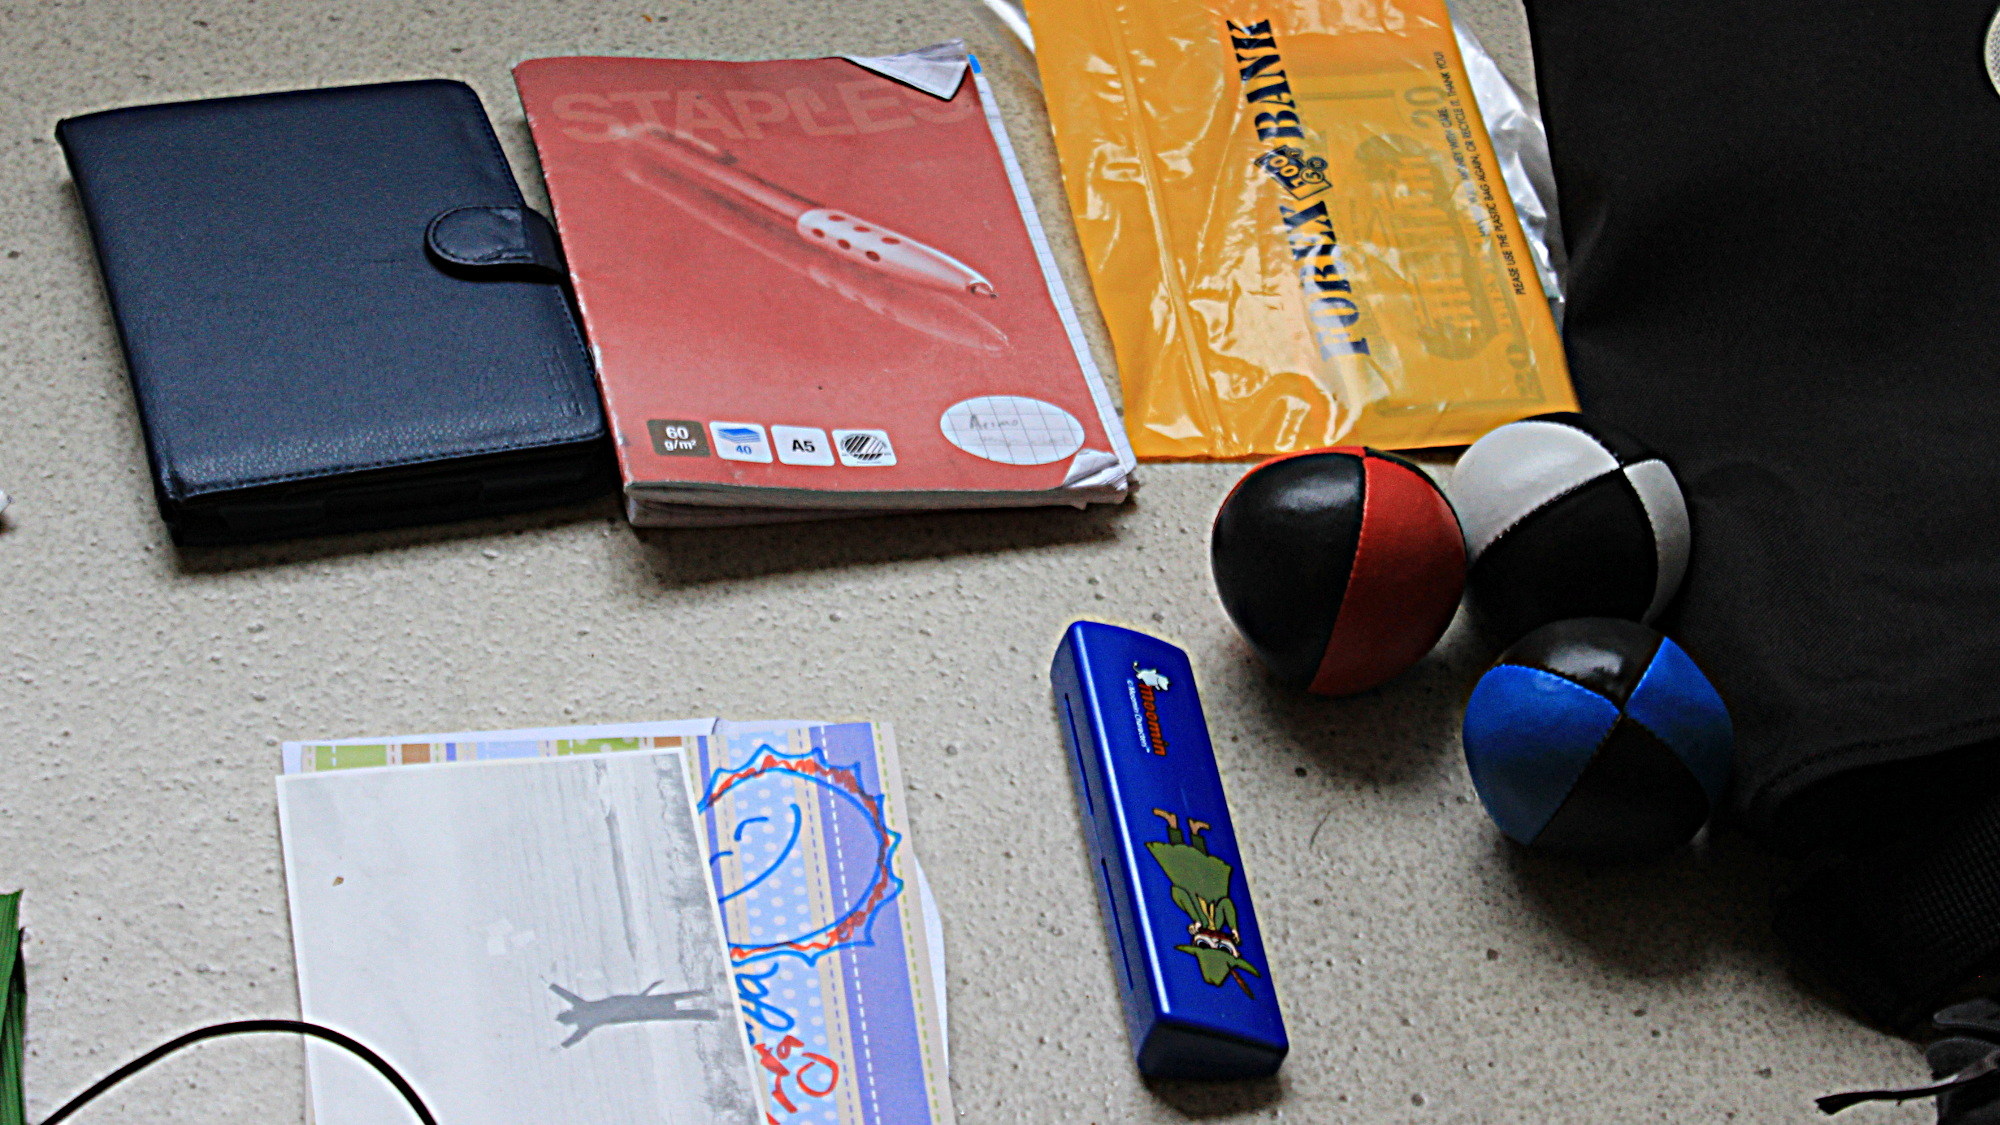 A harmonica, three juggling balls, an Amazon Kindle Paperwhite and a notebook.